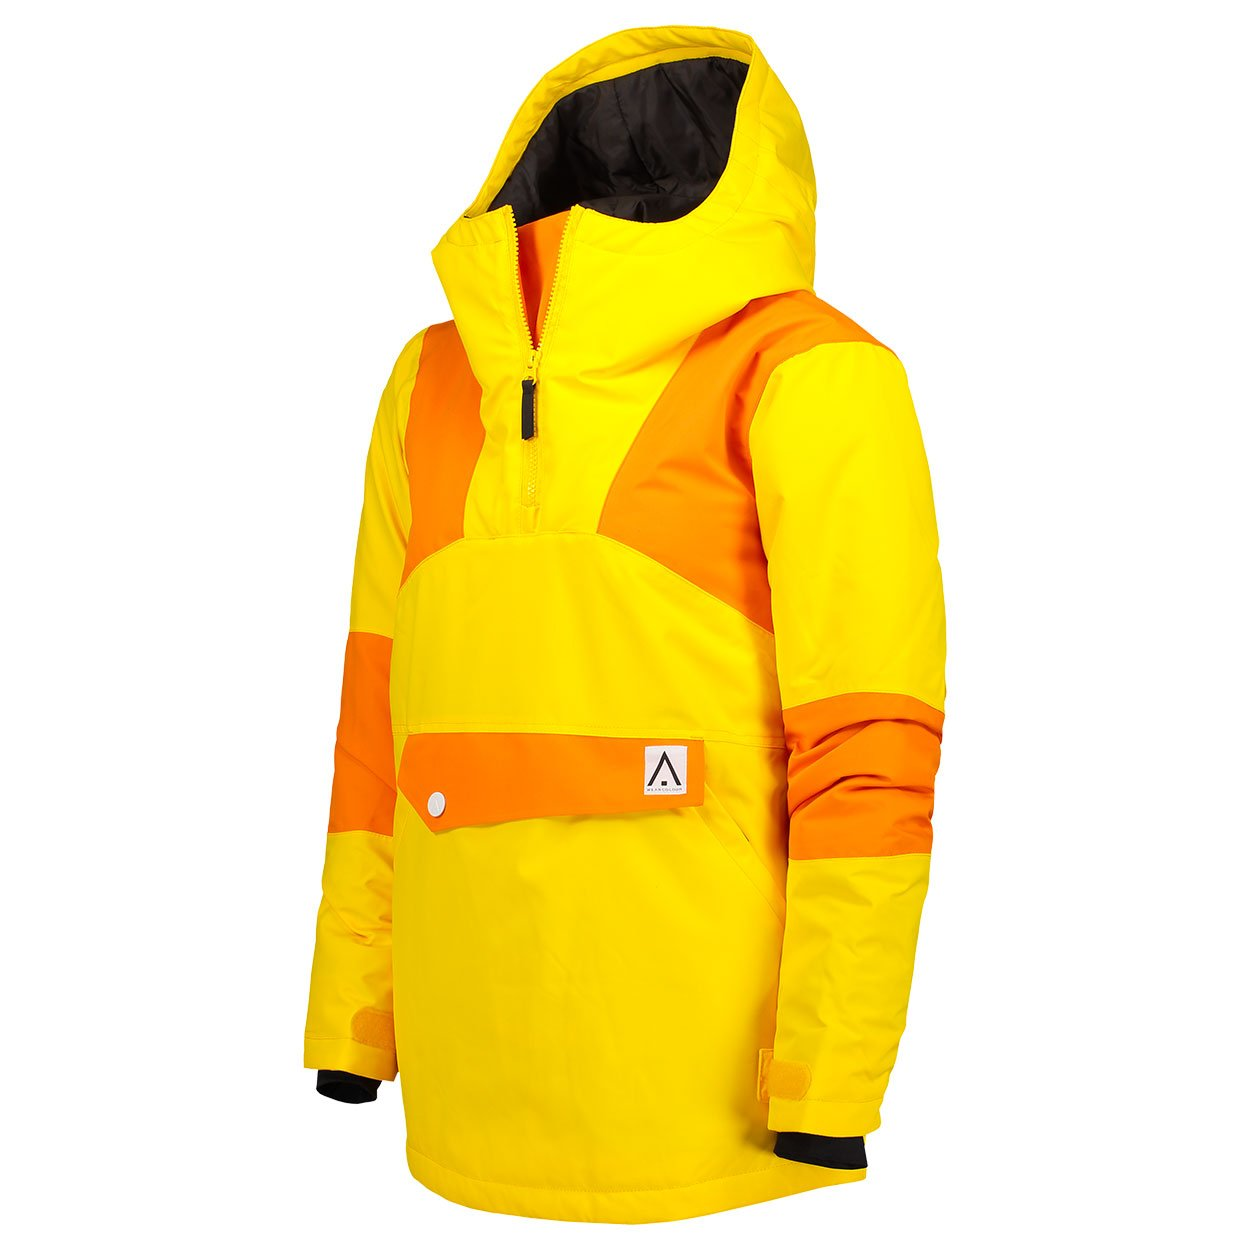 Wear Colour Womens Insulated Homage Anorak - Old Gold (Yellow) –  Futureproof.life 3f707a65f0